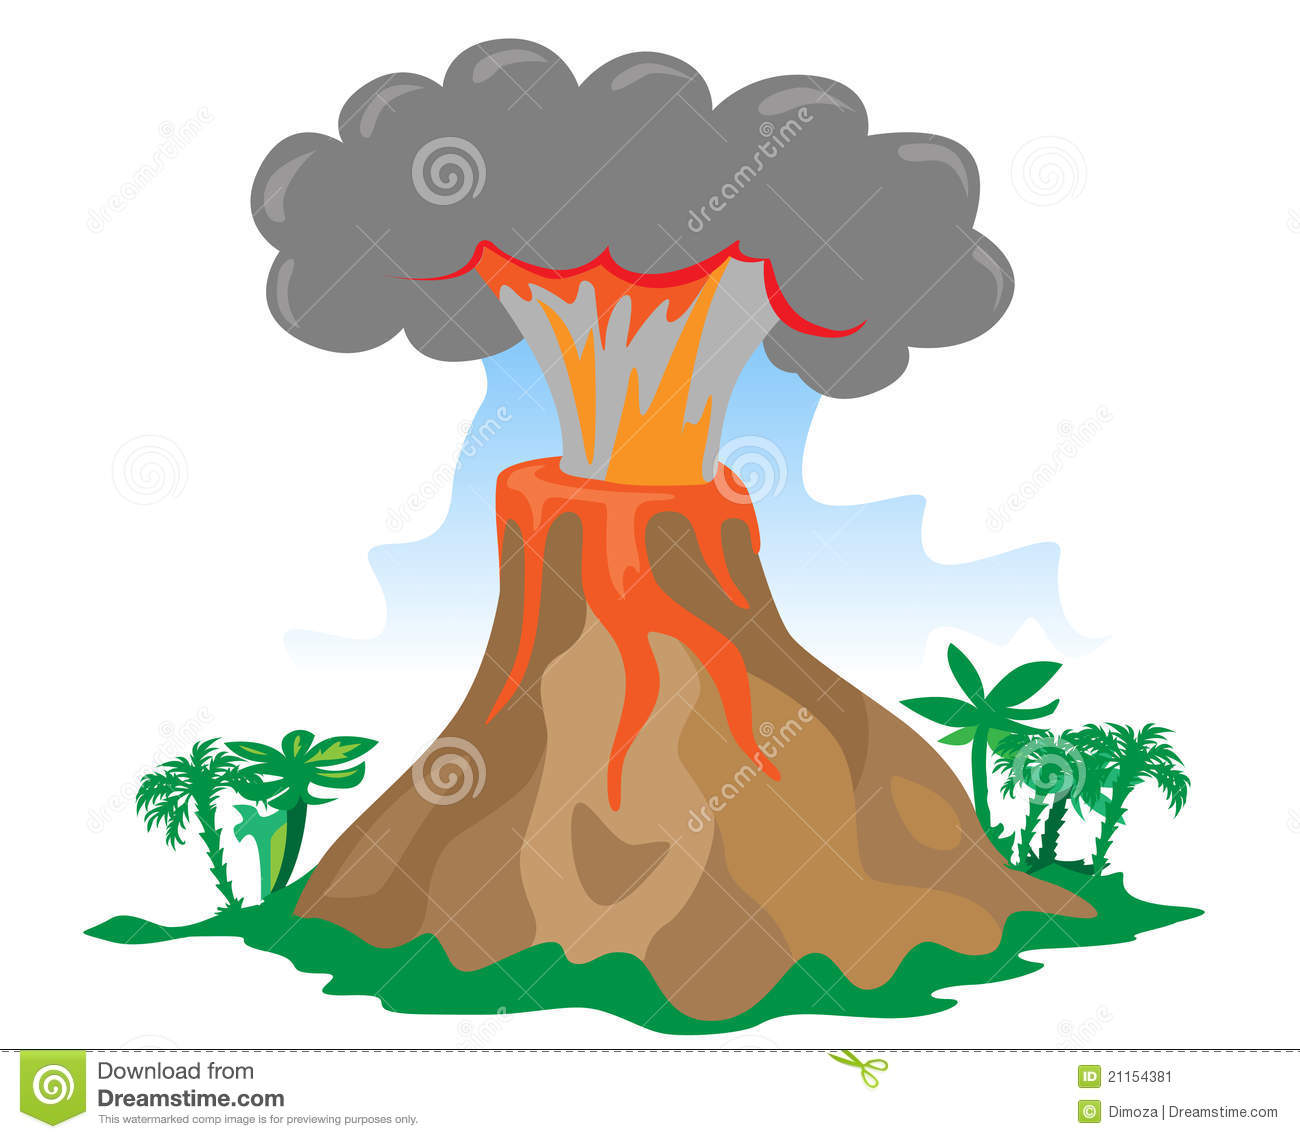 Volcano Clip Art Images | Clipart Panda - Free Clipart Images